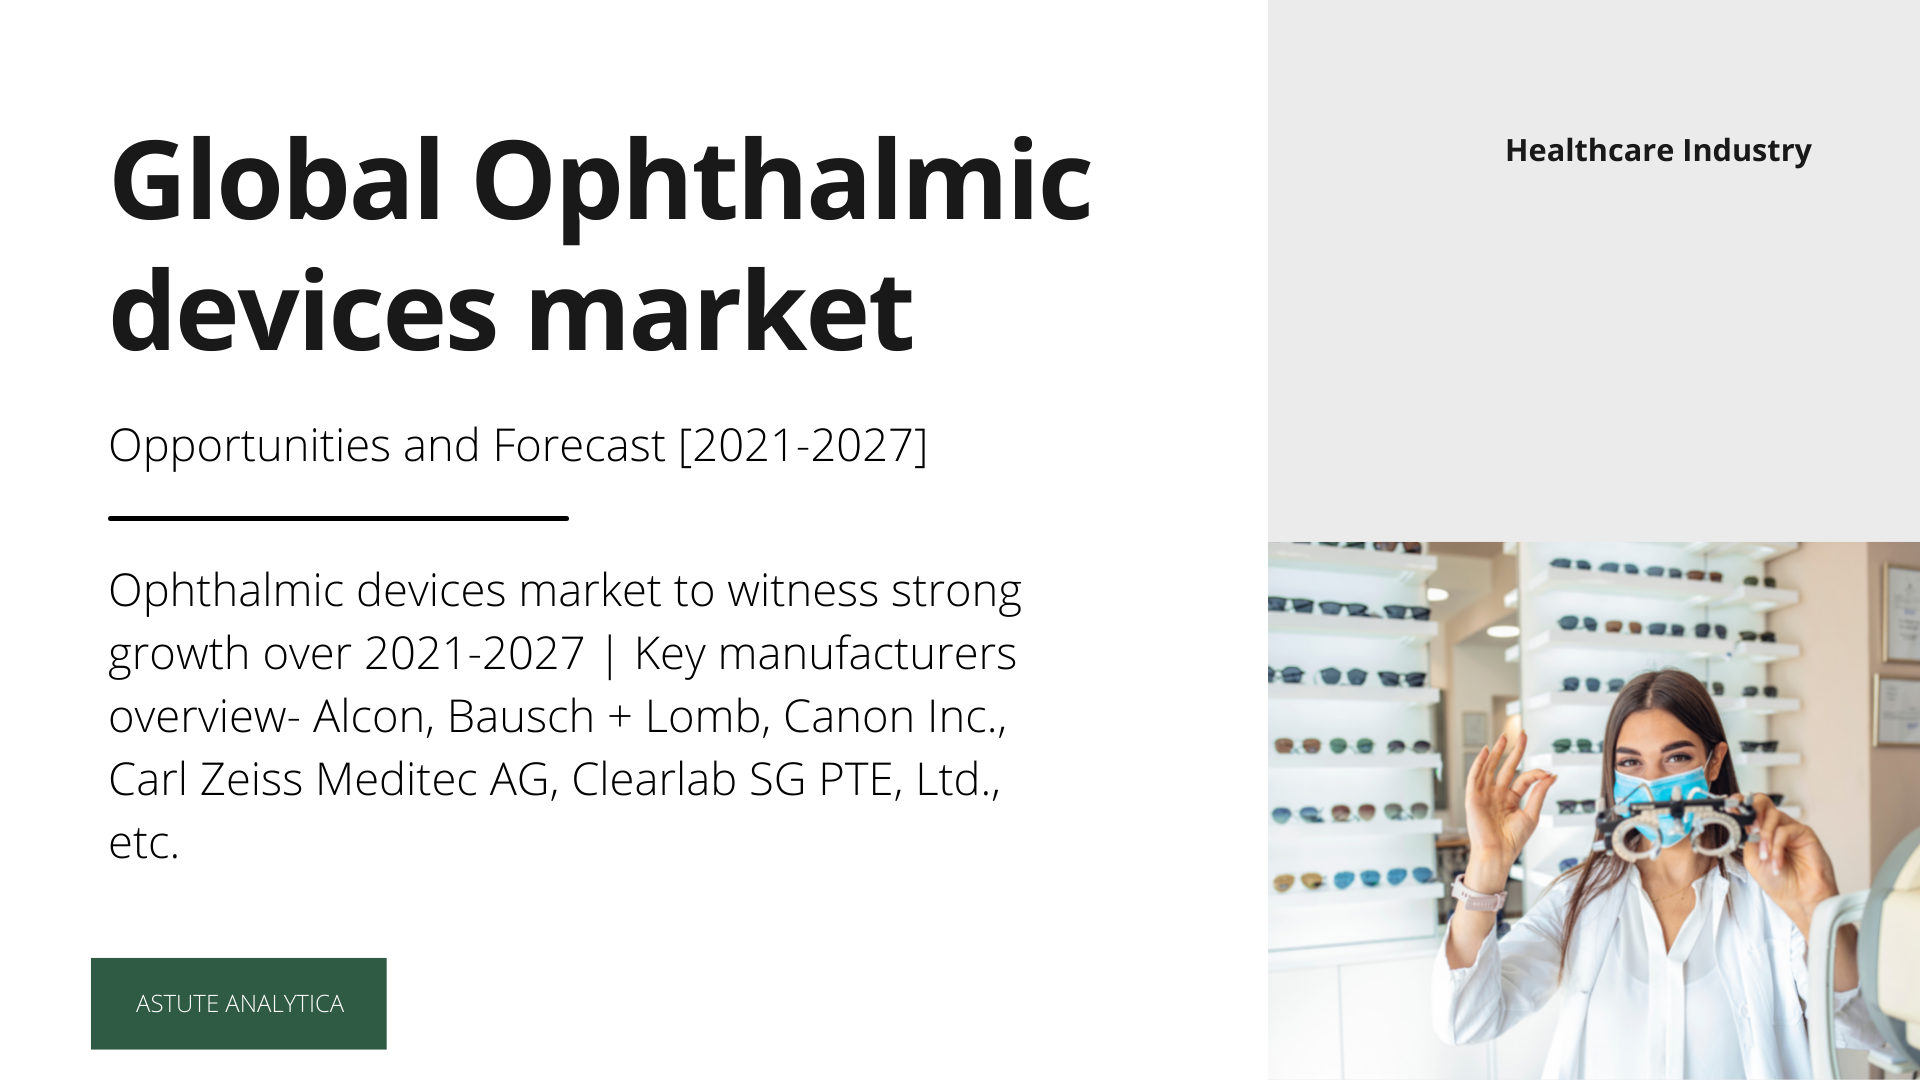 What will be the future impact on the Ophthalmic Devices Market?